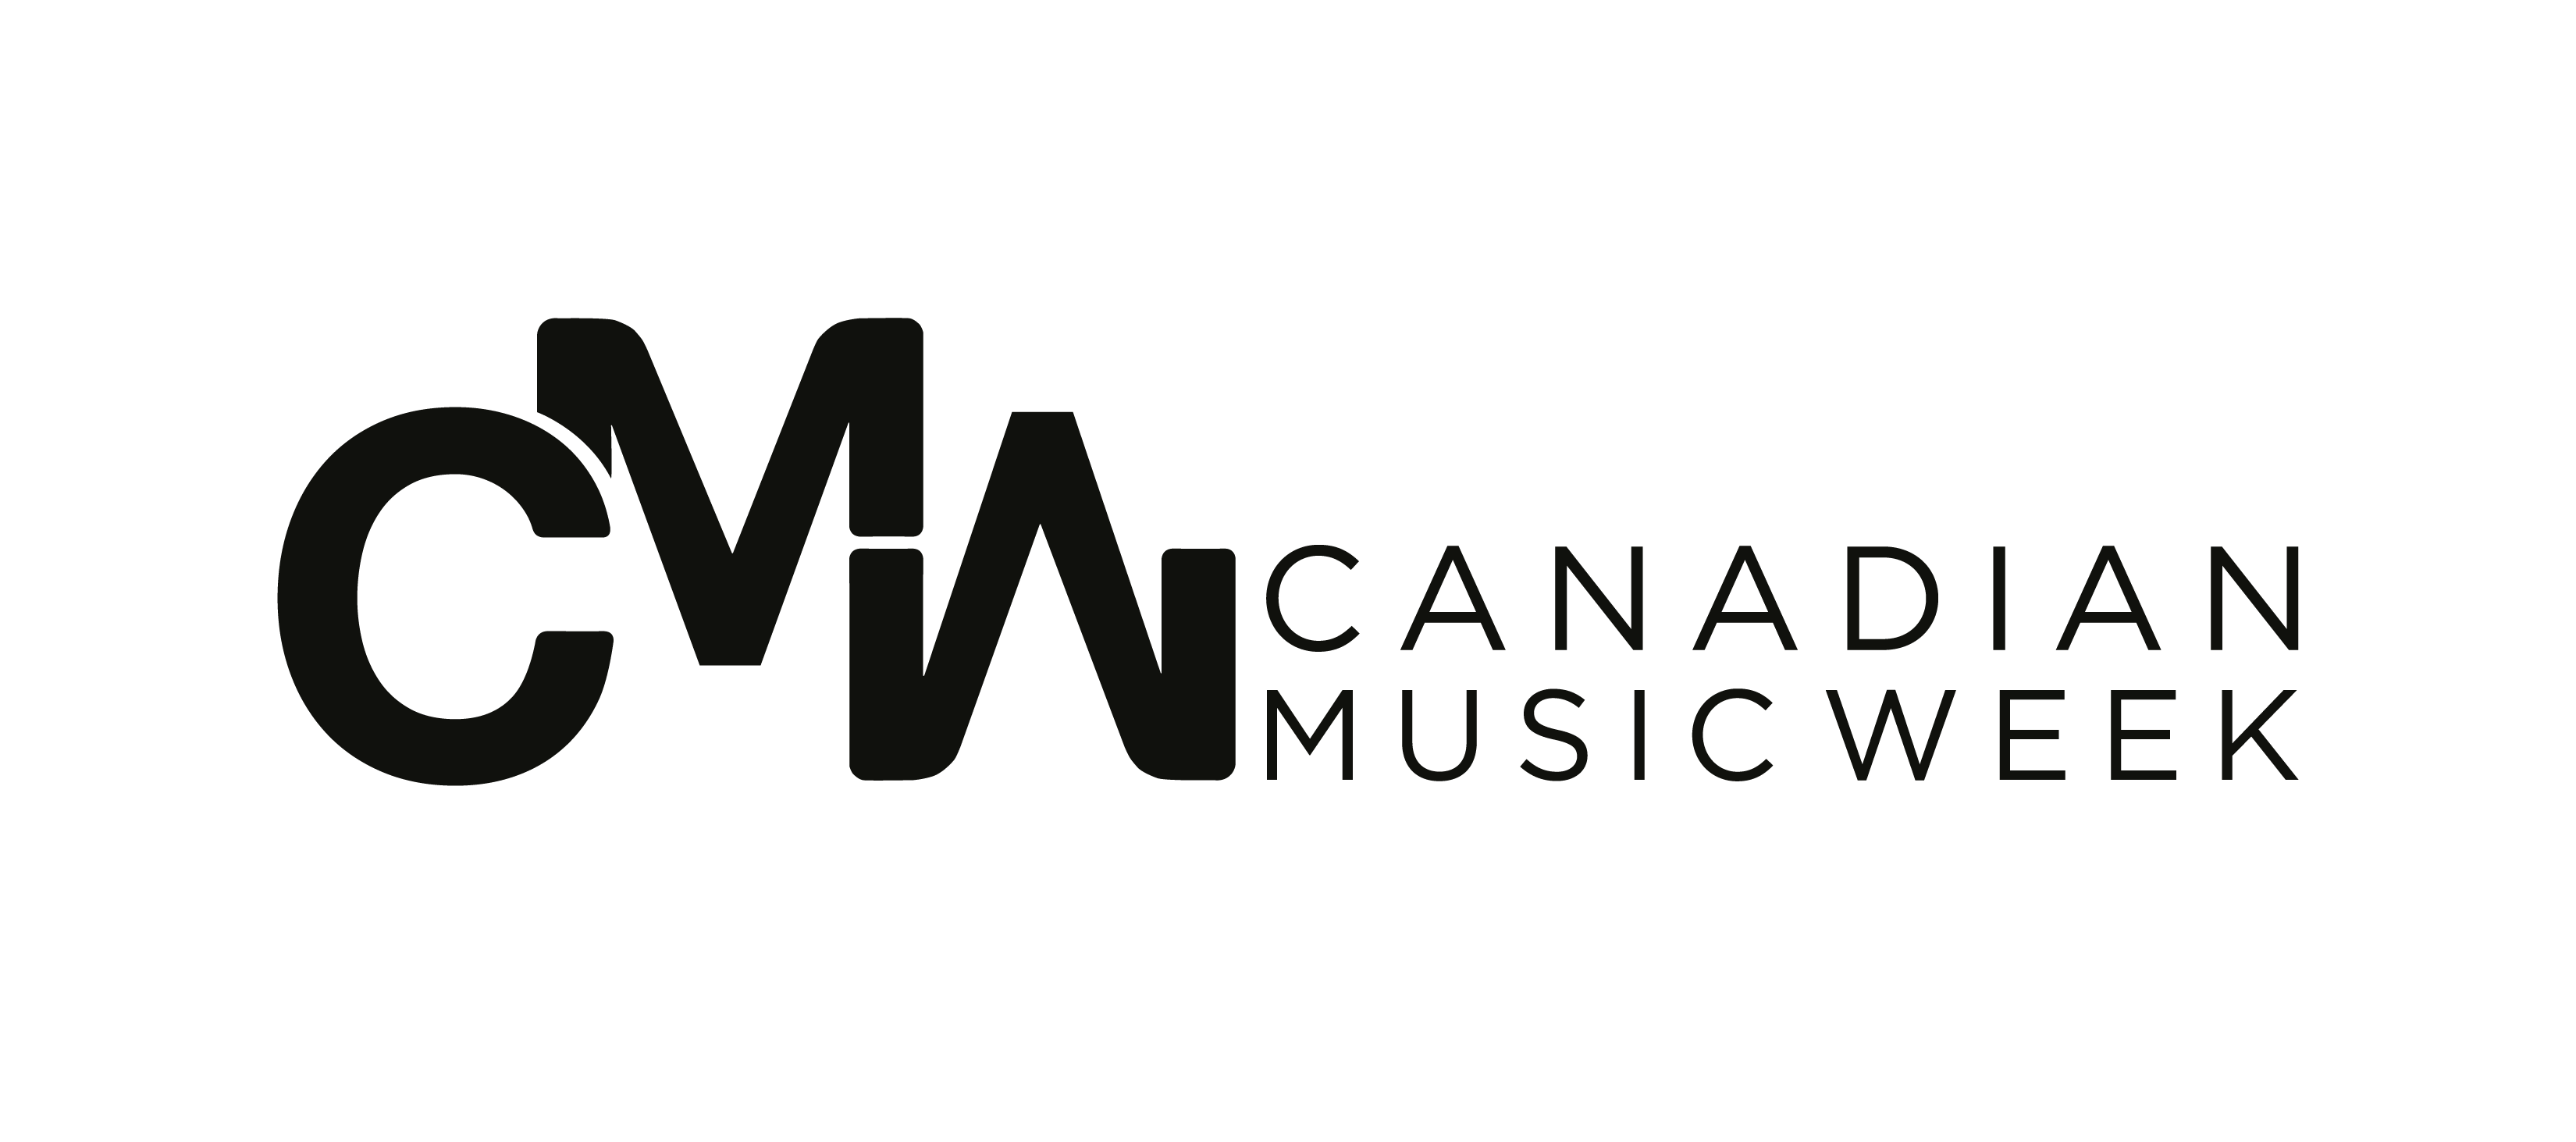 CMW - Canadian Music Week partner Linecheck